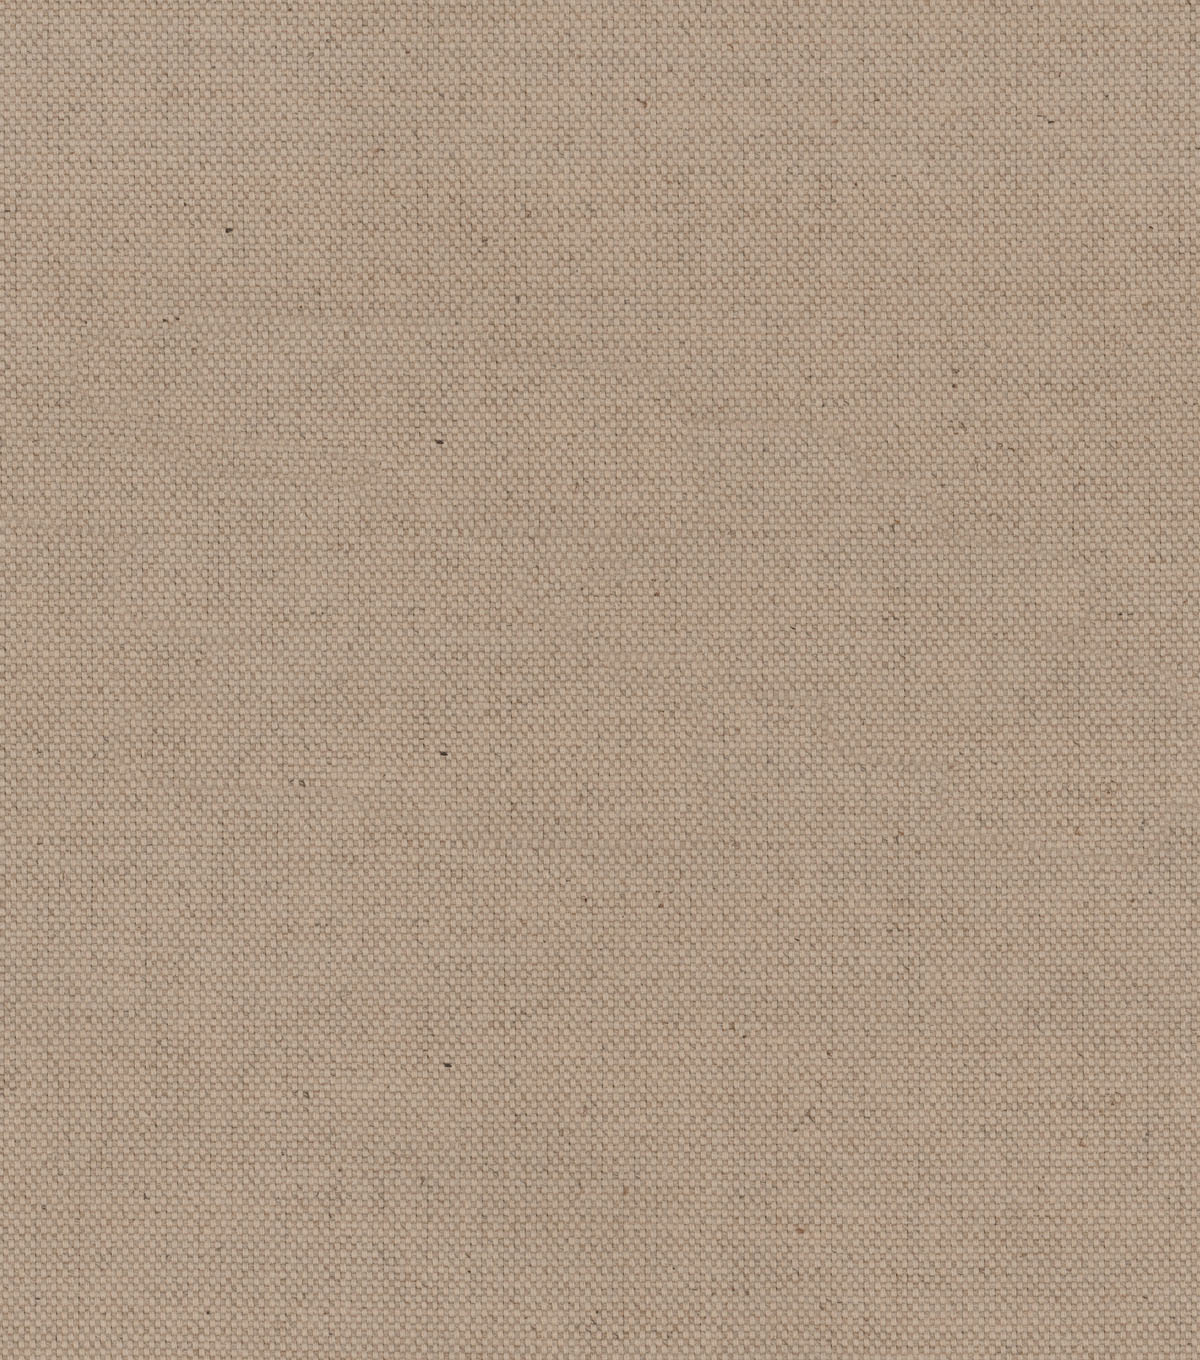 P/K Lifestyles Solid Fabric 54\u0022-Union Solid/Shitake